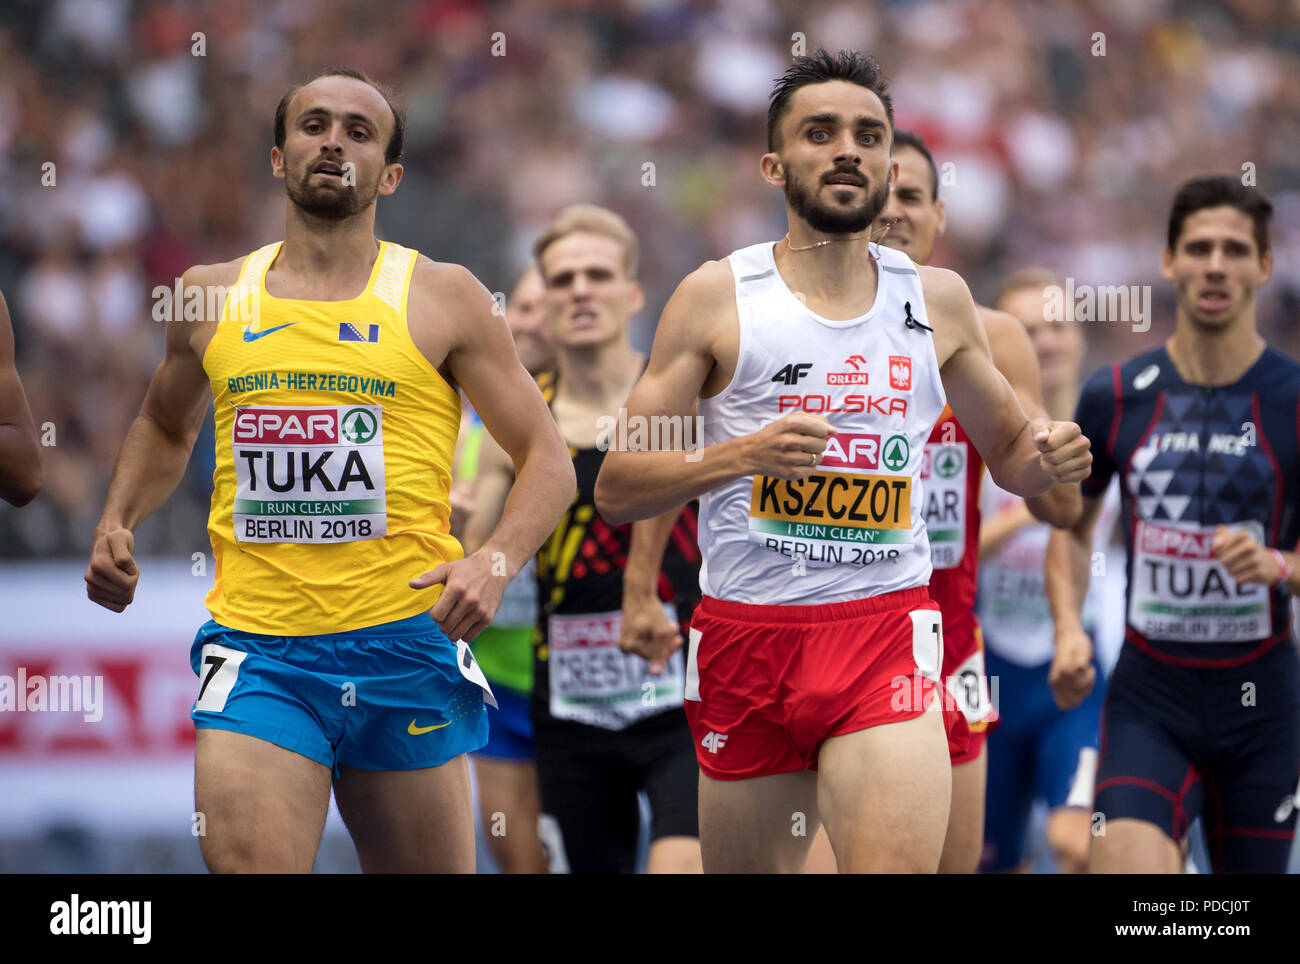 Berlin, Germany. 09th Aug, 2018. Track and Field, European Championships in the Olympic Stadium, 800m, preliminary round, Men. Adam Kszczot from Poland (r) and Amel Tuka from Bosnia and Herzegovina in action. Credit: Sven Hoppe/dpa/Alamy Live News - Stock Image